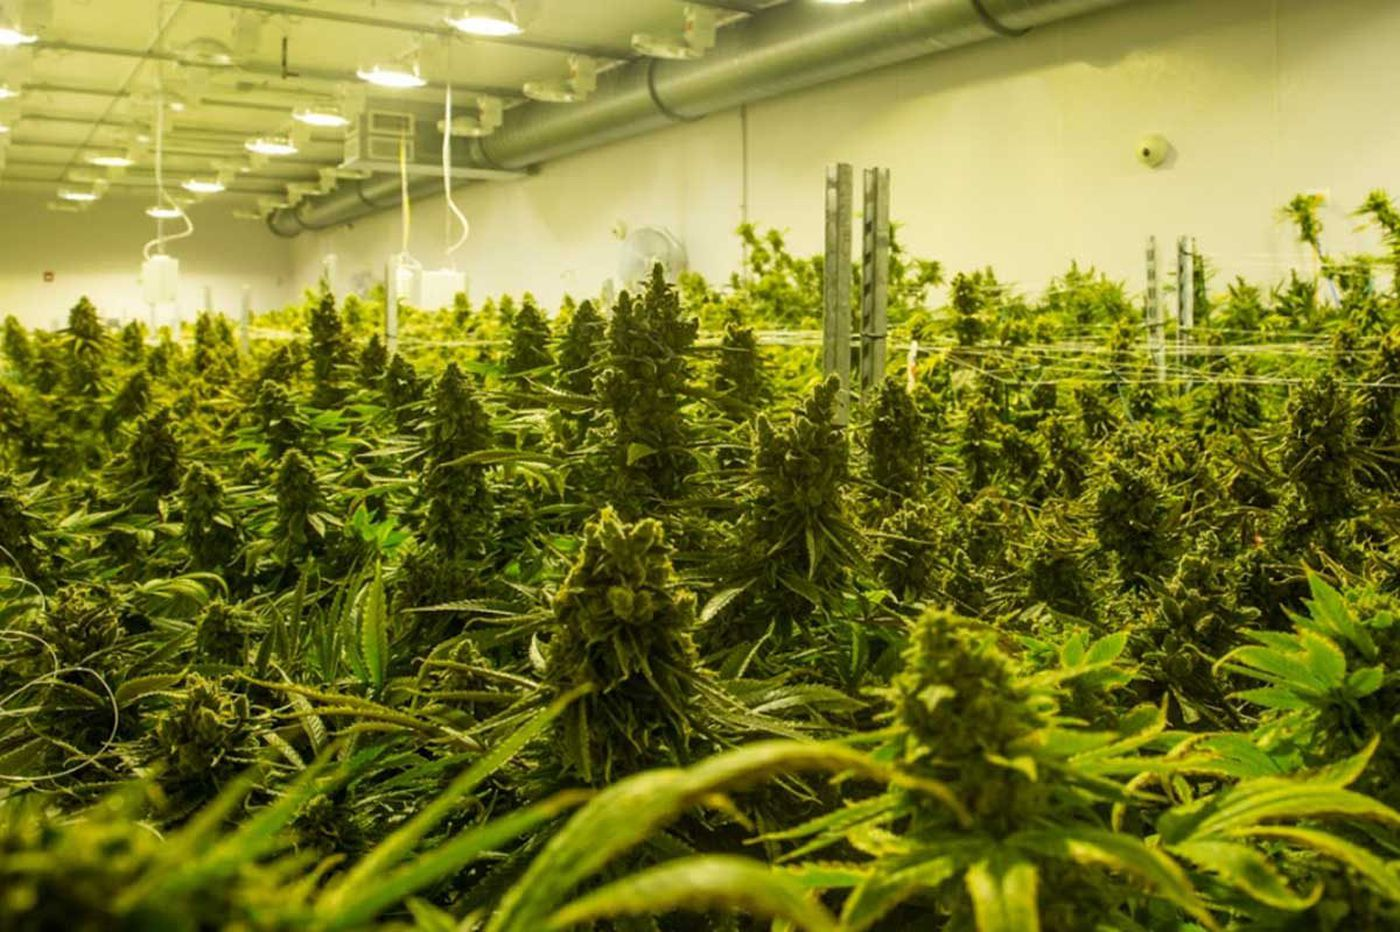 Pa.'s first legal marijuana harvest this month, in shops by Valentines Day